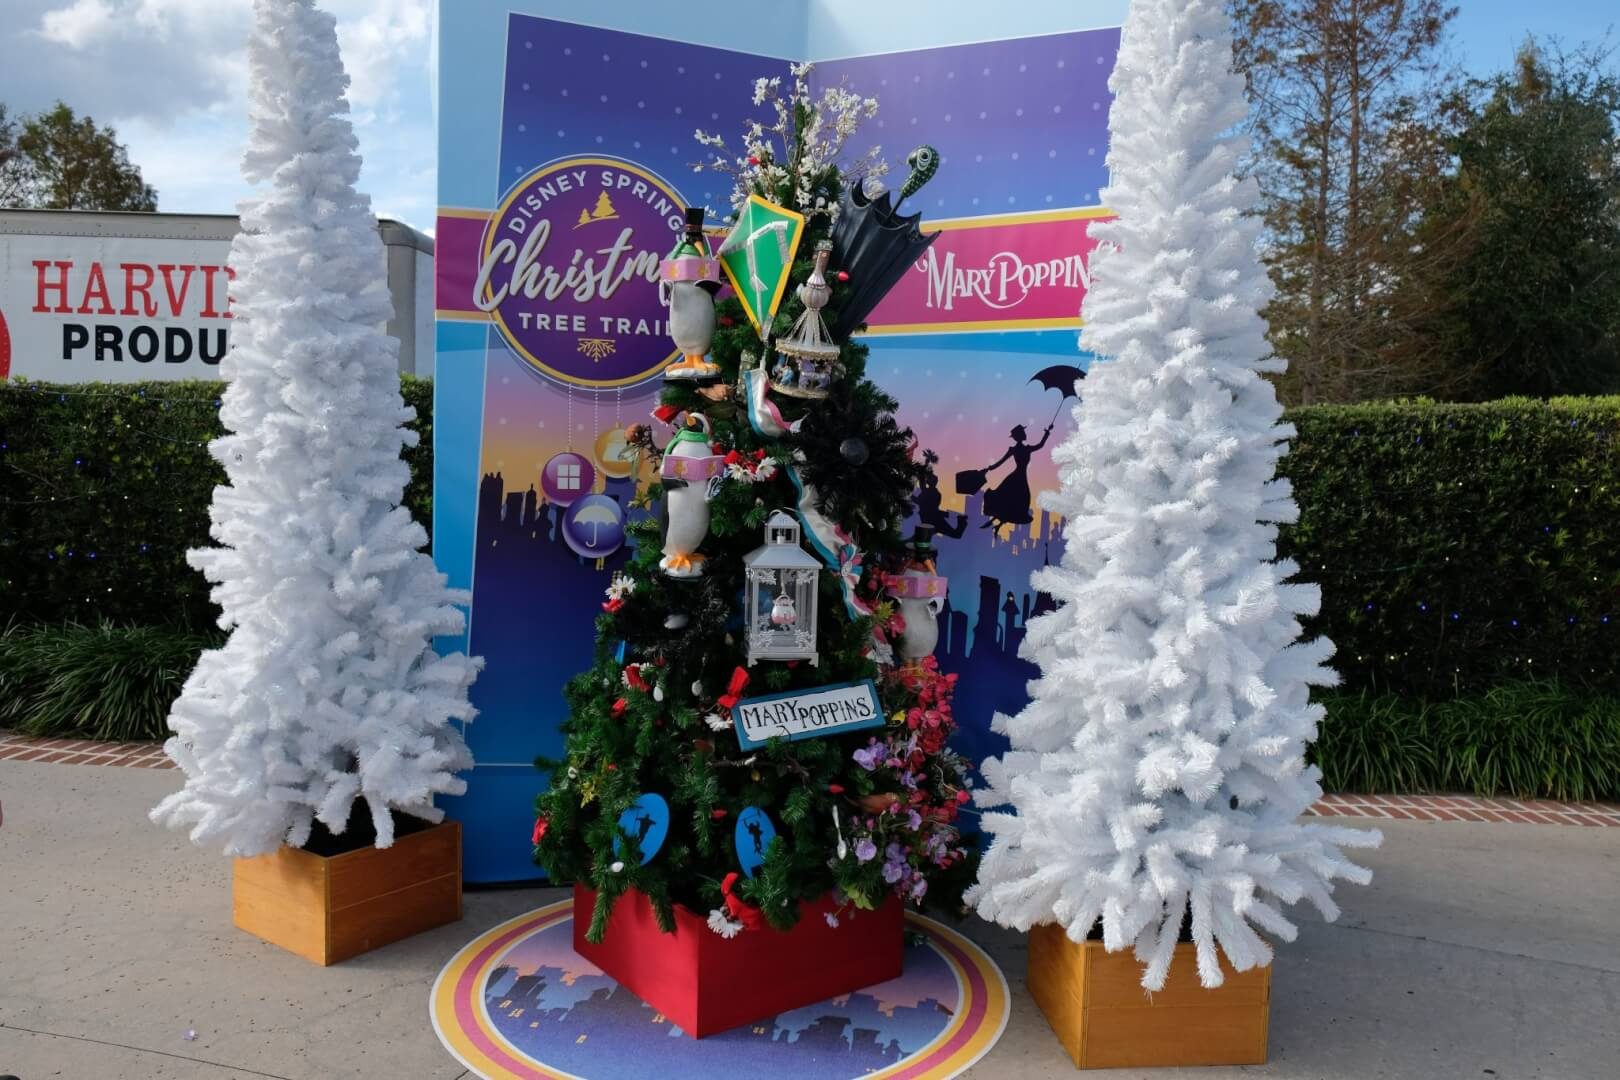 all of these christmas decorations are now on display at disney springs the christmas tree trail is also free to all guests who visit the entertainment